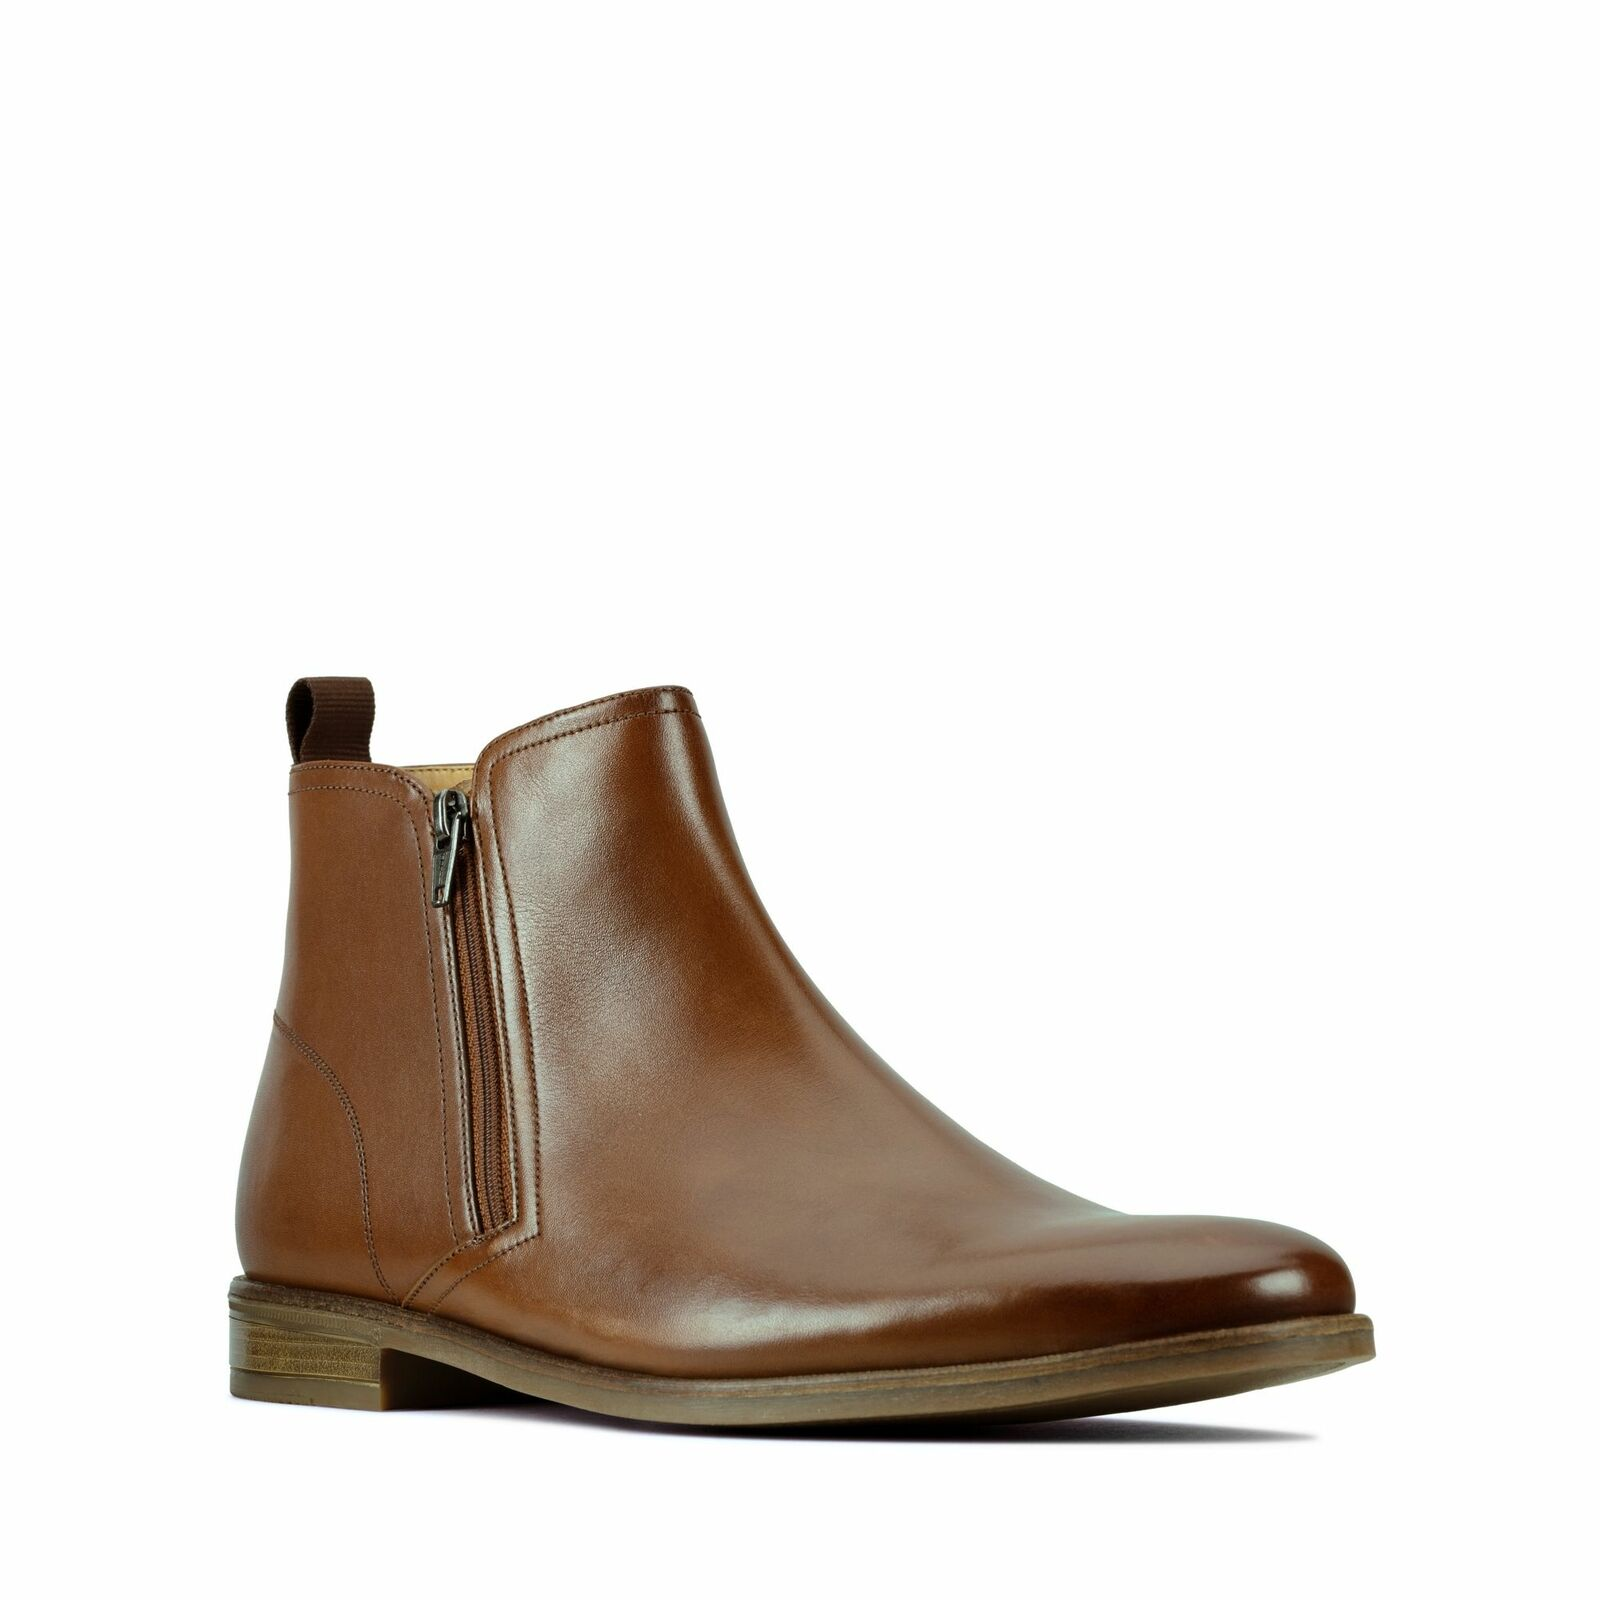 Clarks Stanford Zip Mens Tan Smart Casual Dress Chelsea Leather Boots